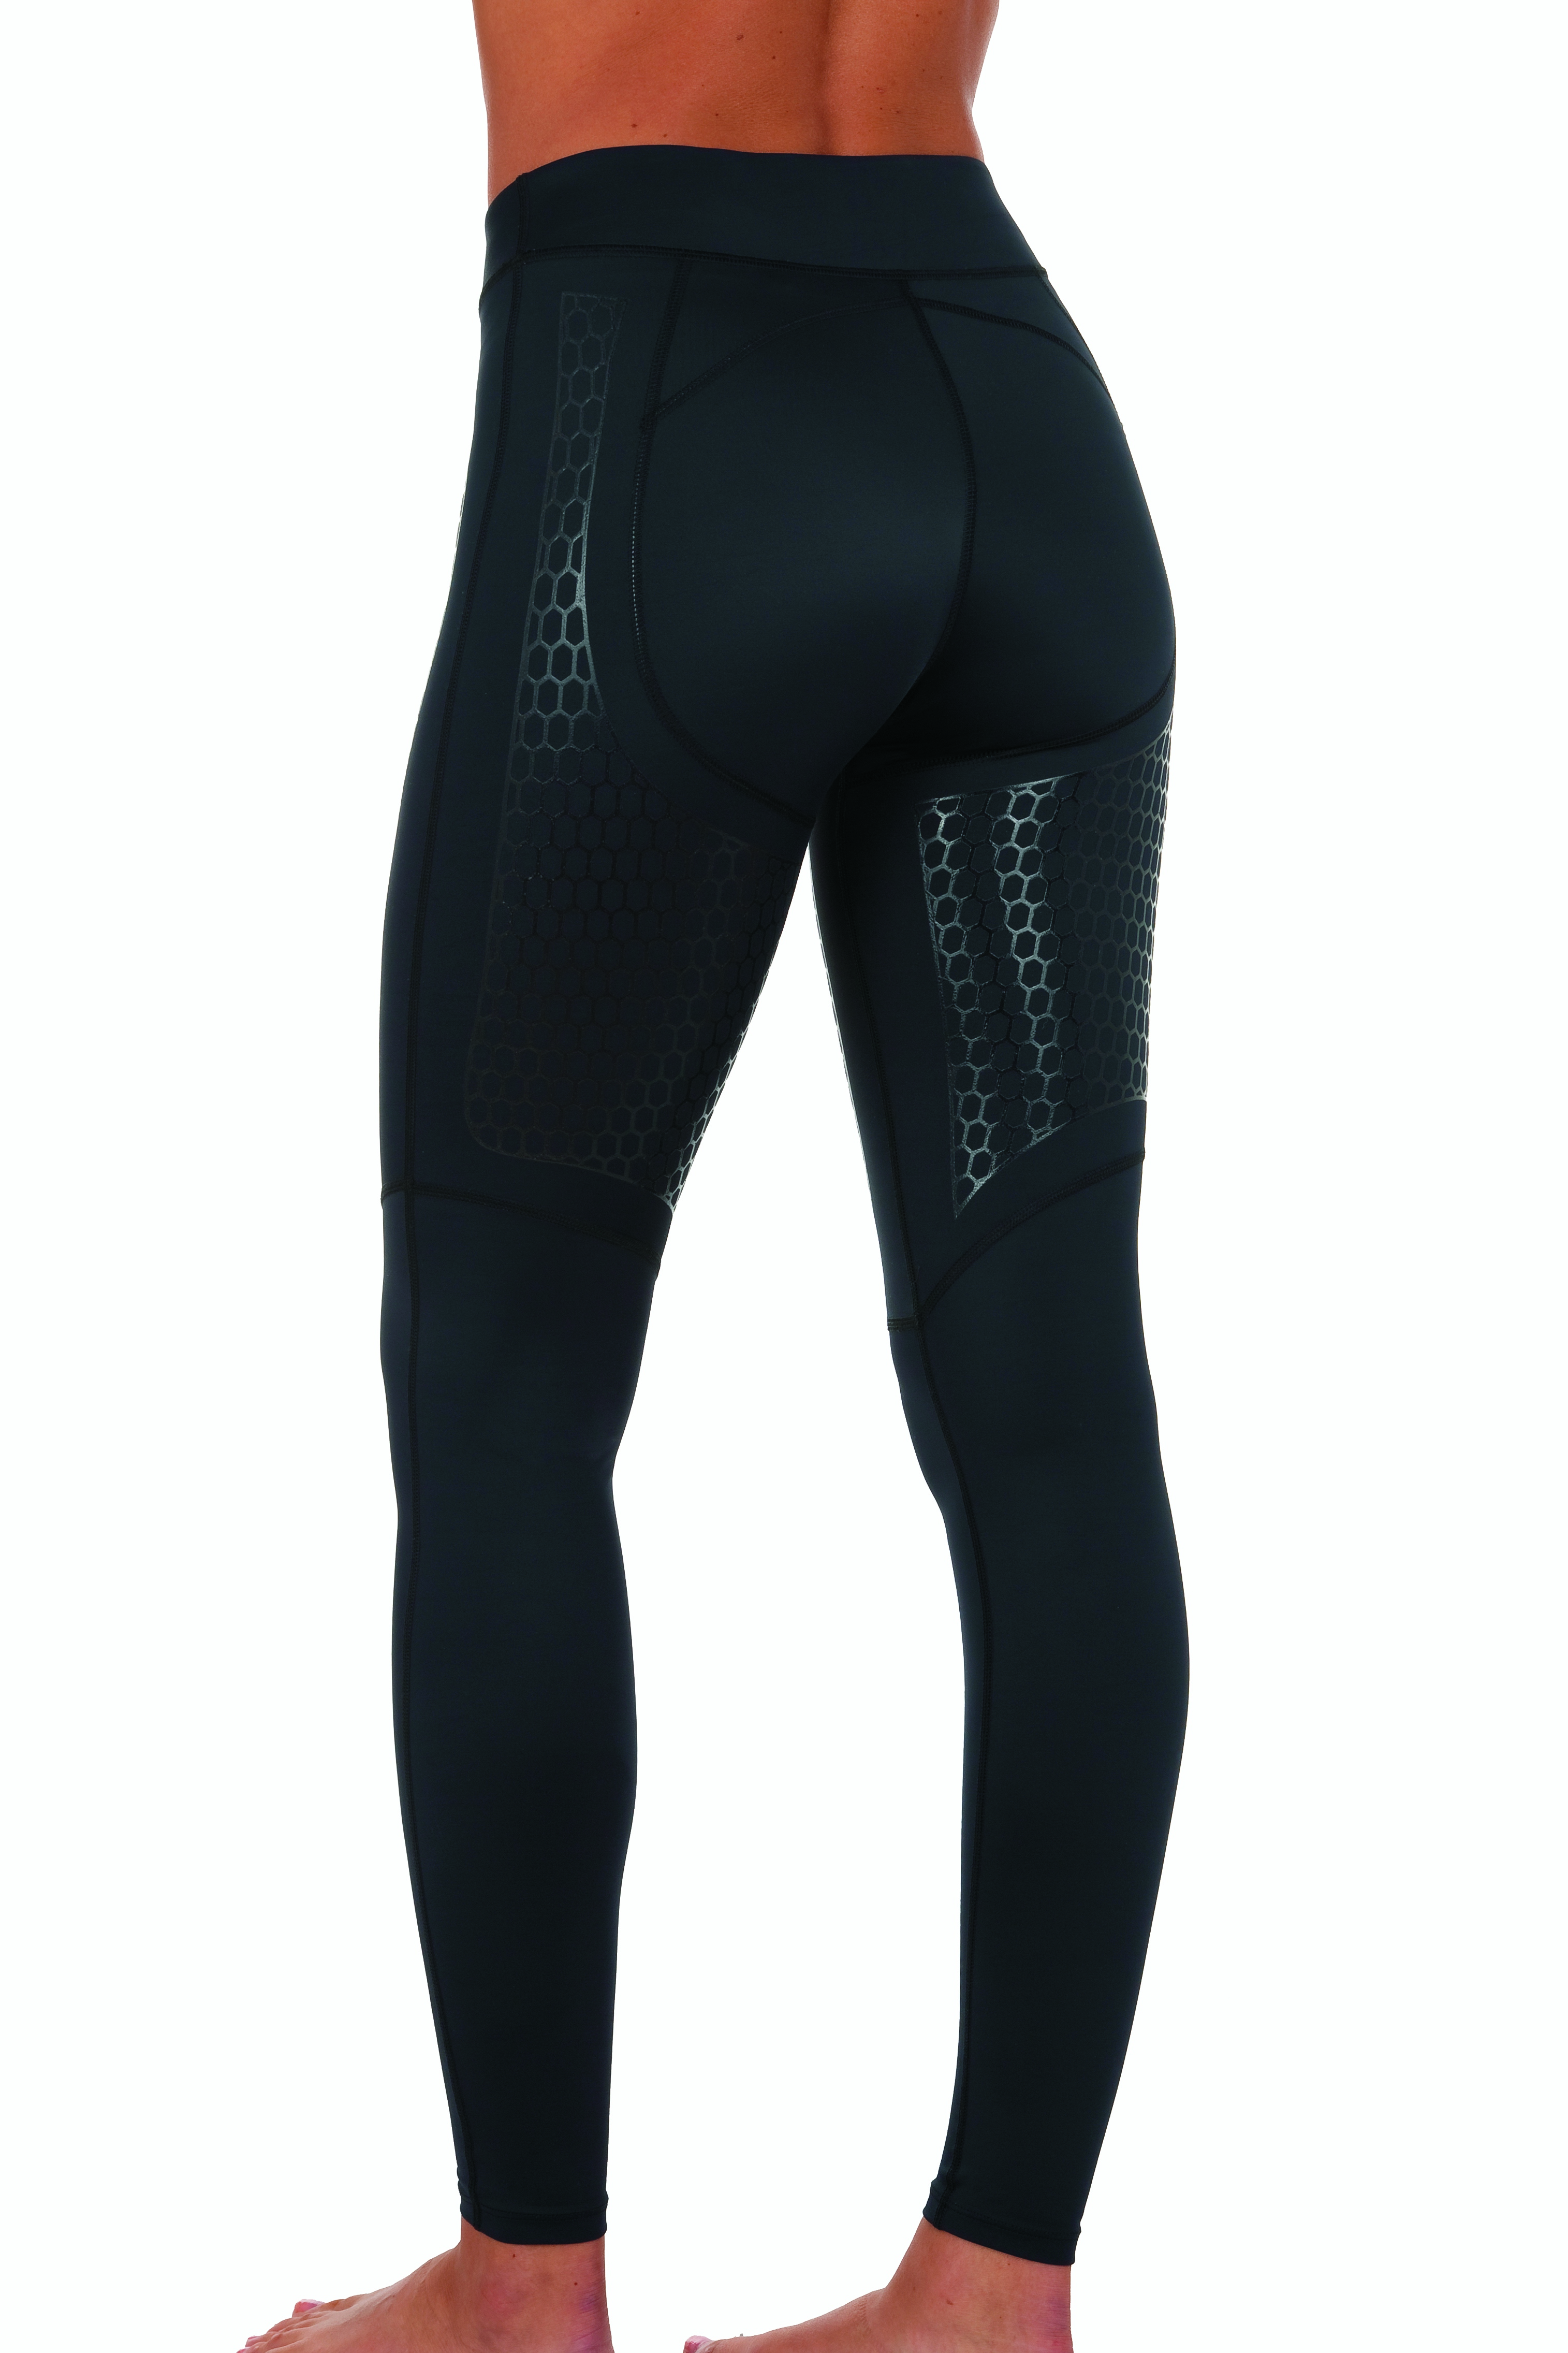 Die Body Support Kollektion von Shockabsorber